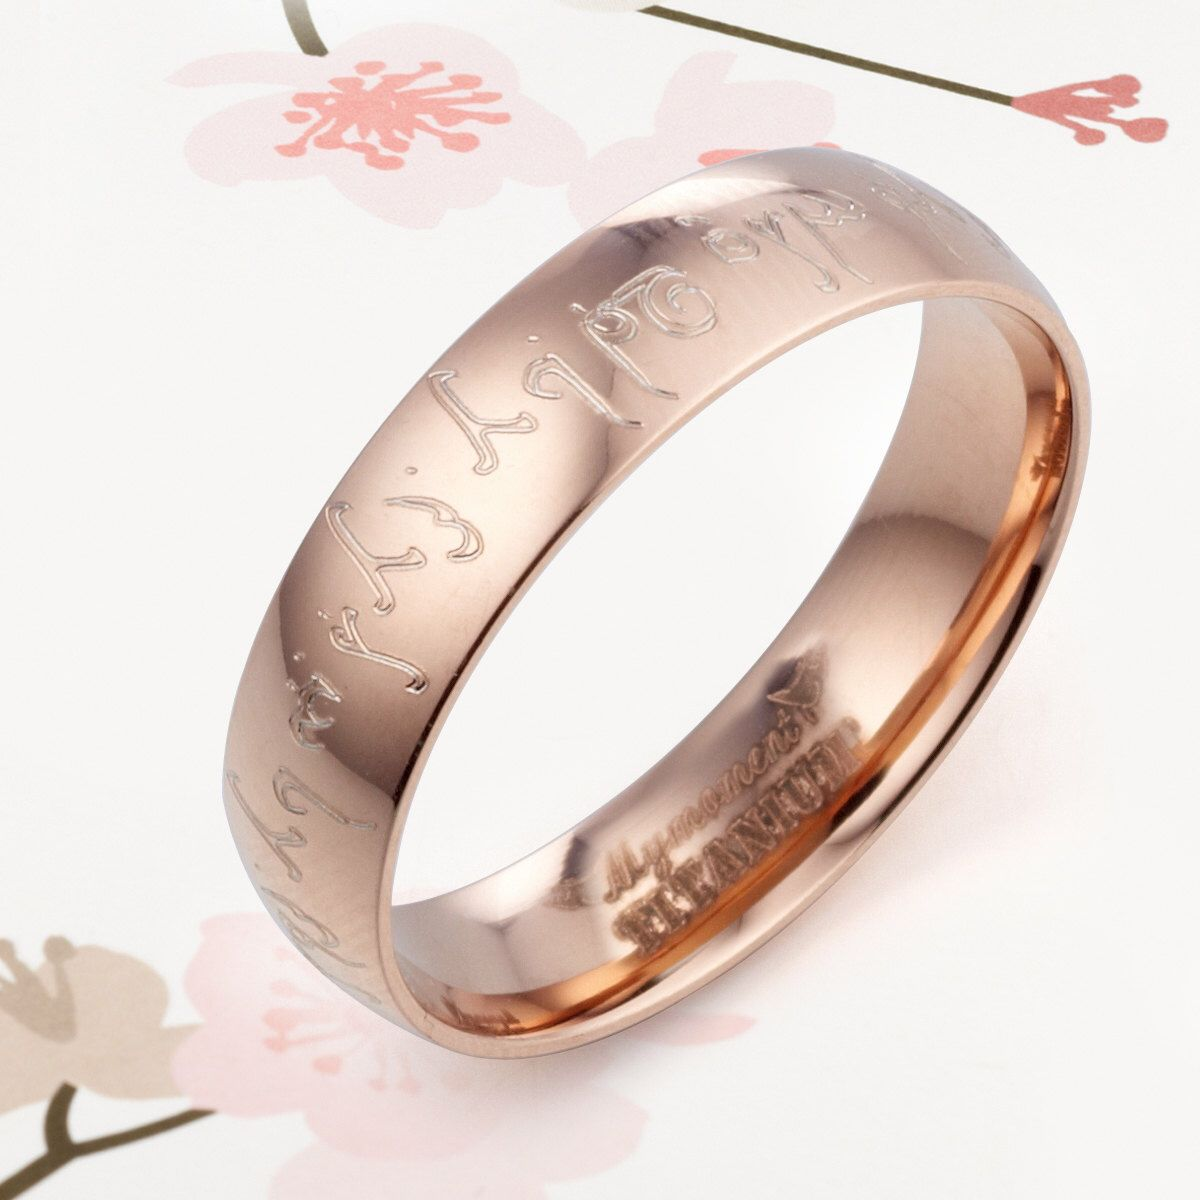 Personal  Elvish Engrave Lord of ring 18K Rose Gold Wedding Anniversary Titanium Couple Rings by MymomentJewelry on Etsy https://www.etsy.com/listing/151476650/personal-elvish-engrave-lord-of-ring-18k